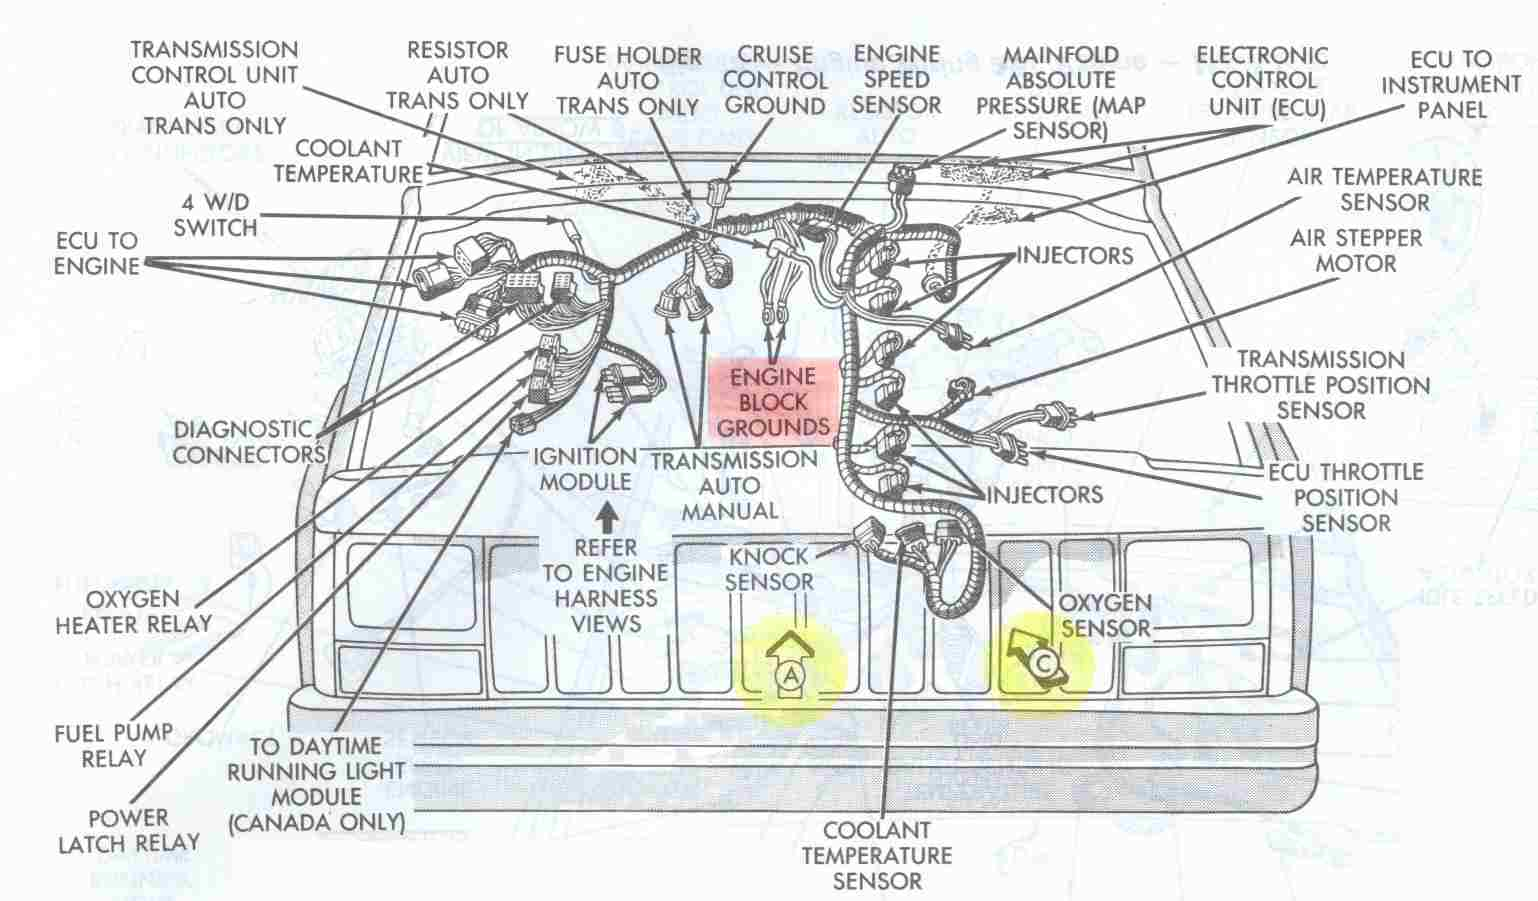 Electrical_Engine_Ground_Points_Overview jeep cherokee electrical diagnosing erratic behavior of engine 1998 jeep cherokee wiring harness diagram at alyssarenee.co